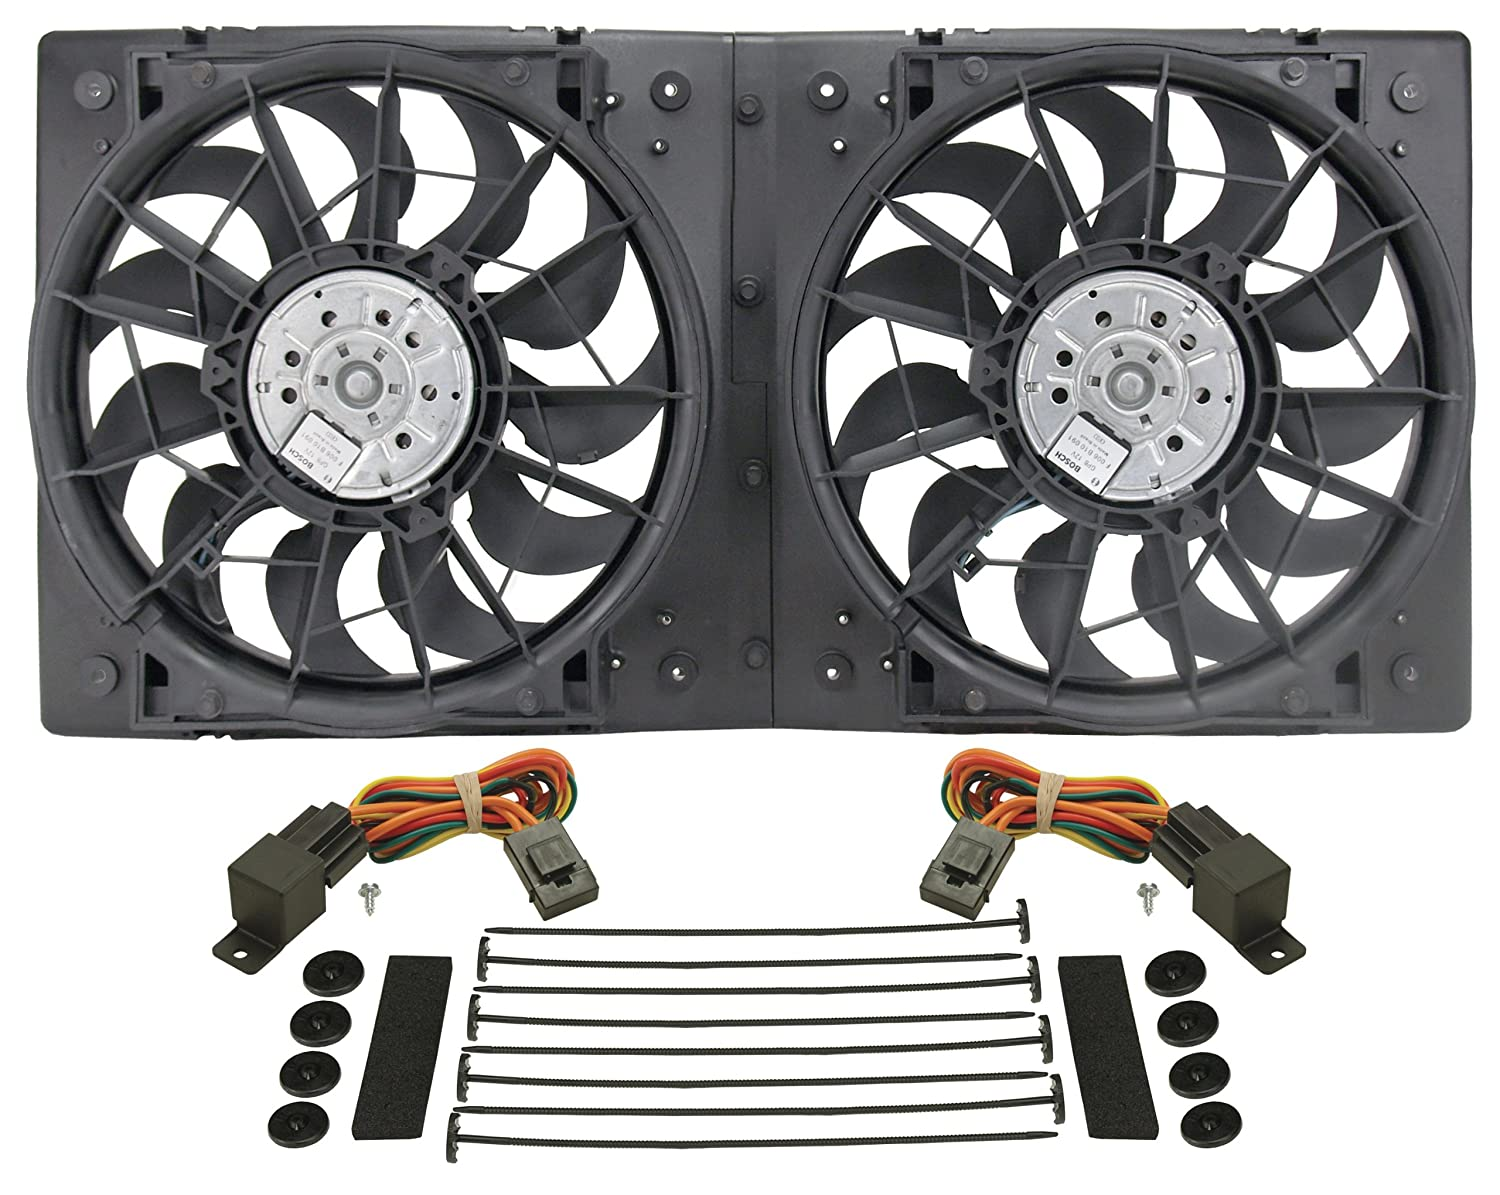 Derale 16928 High Output Dual Radiator Fan